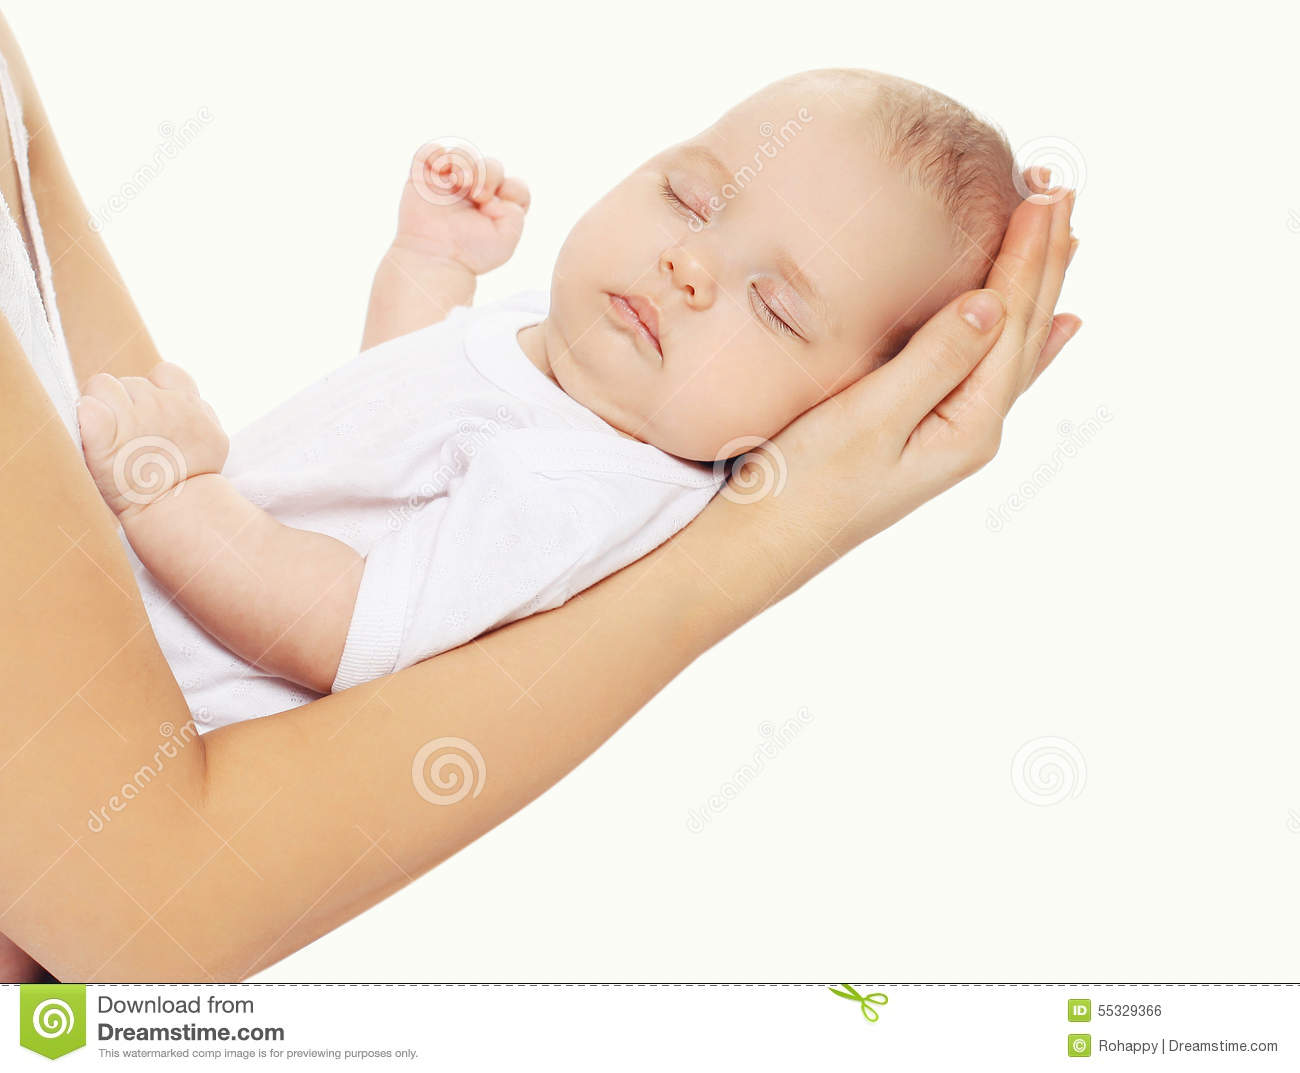 77251e8b336 Portrait Of Baby Sleeping On Hands Mother Stock Photo - Image of ...